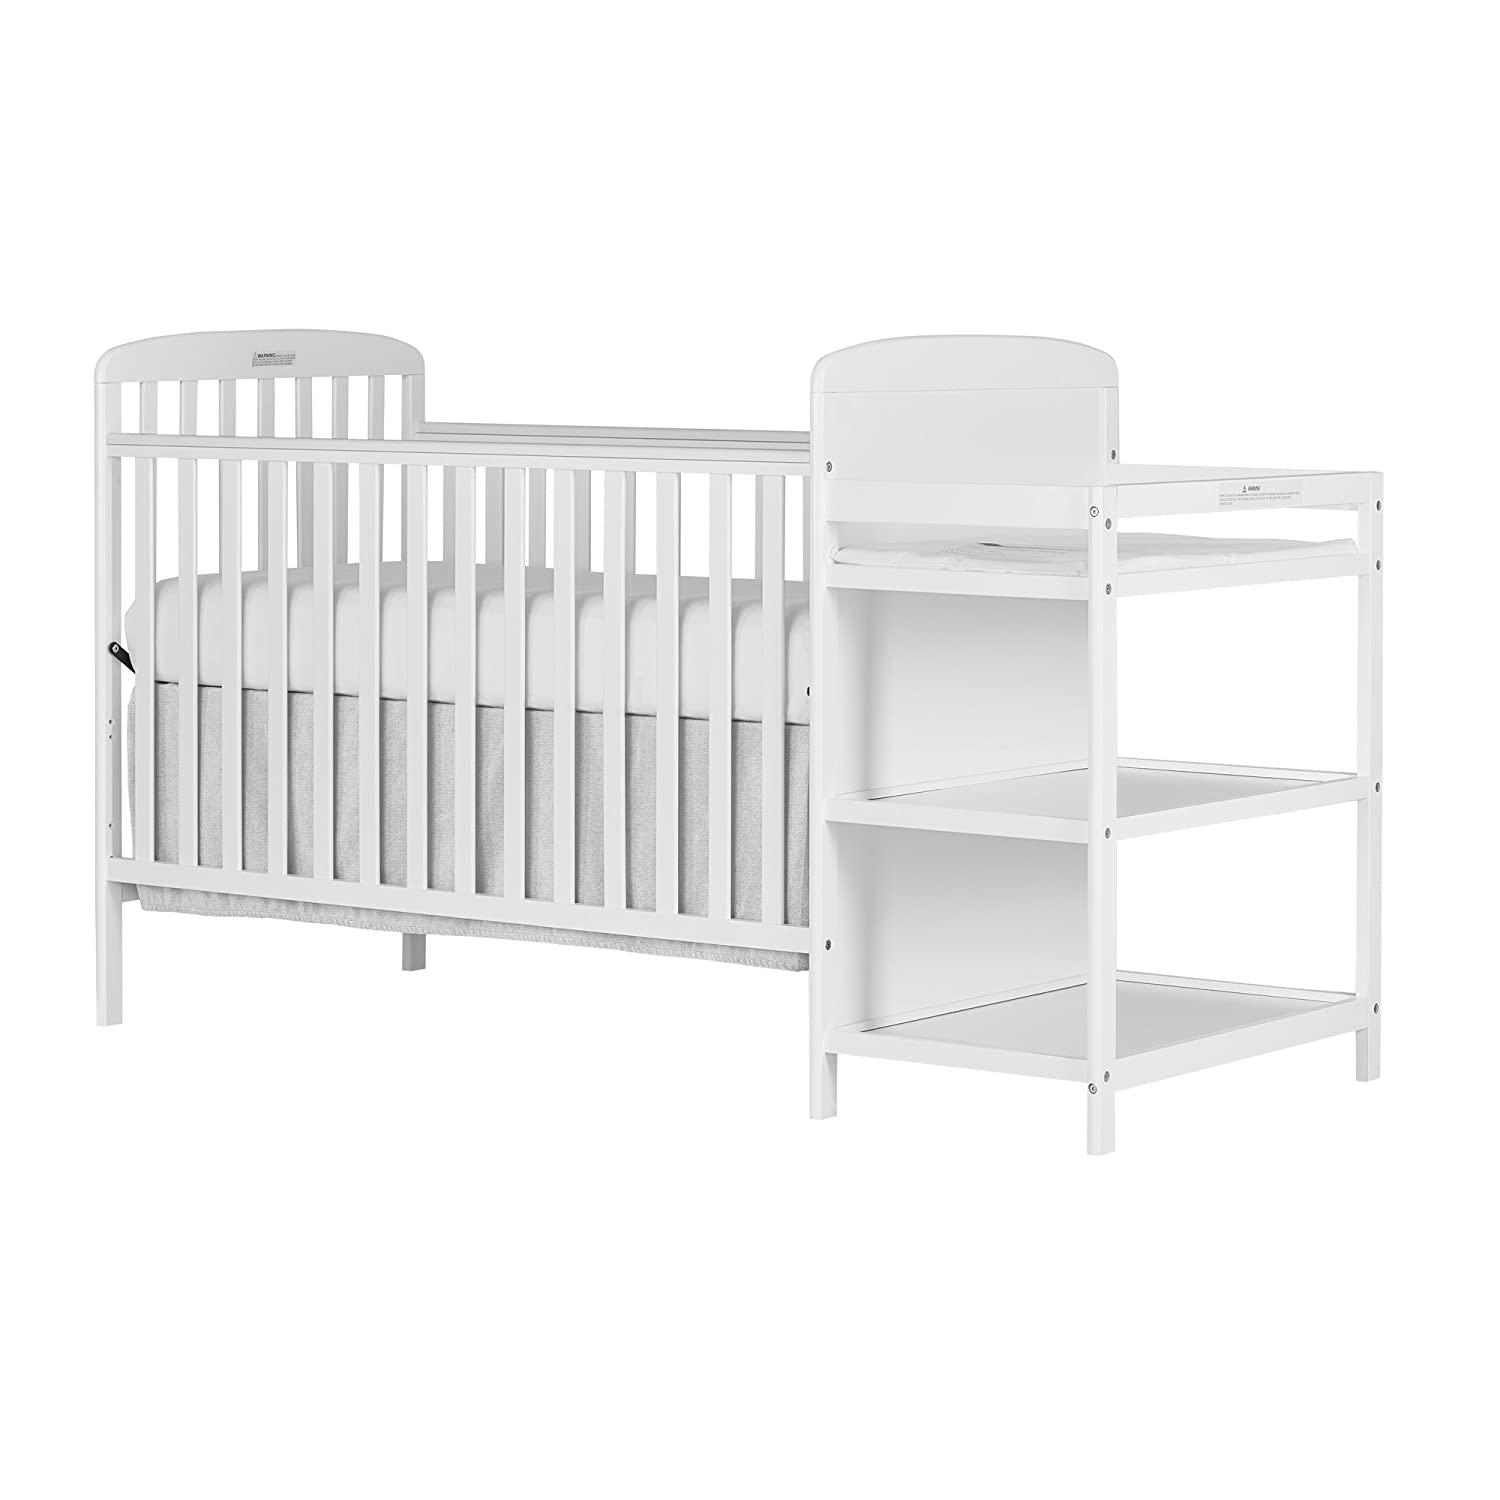 Dream On Me, Anna 4 in 1 Full Size Crib and Changing Table Combo 678-K